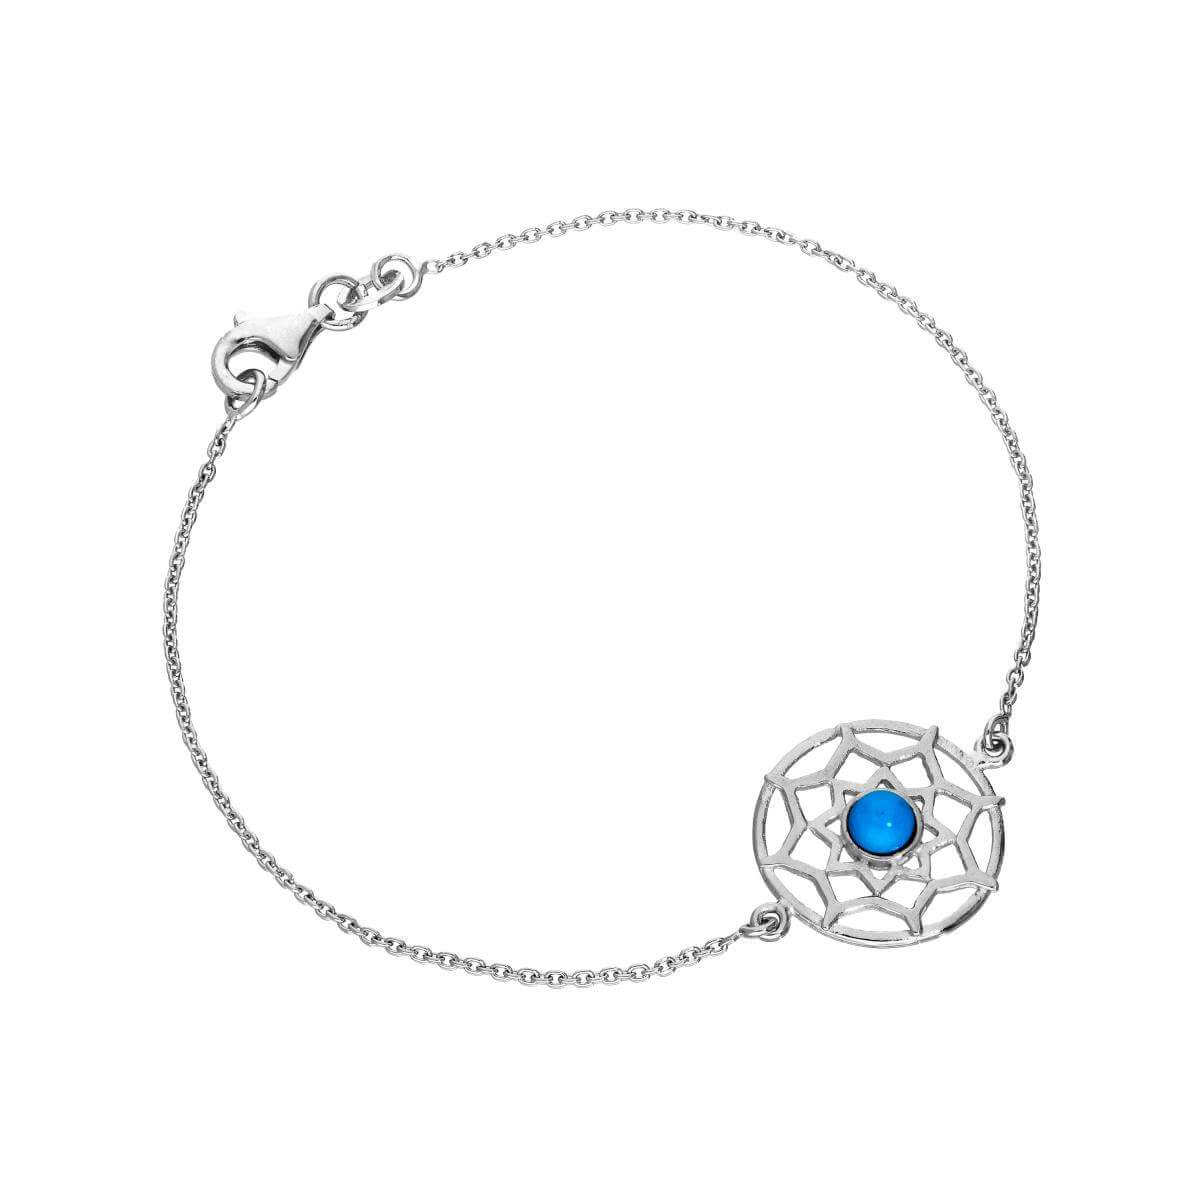 Sterling Silver & Blue Enamel Dreamcatcher Bracelet 7 Inches